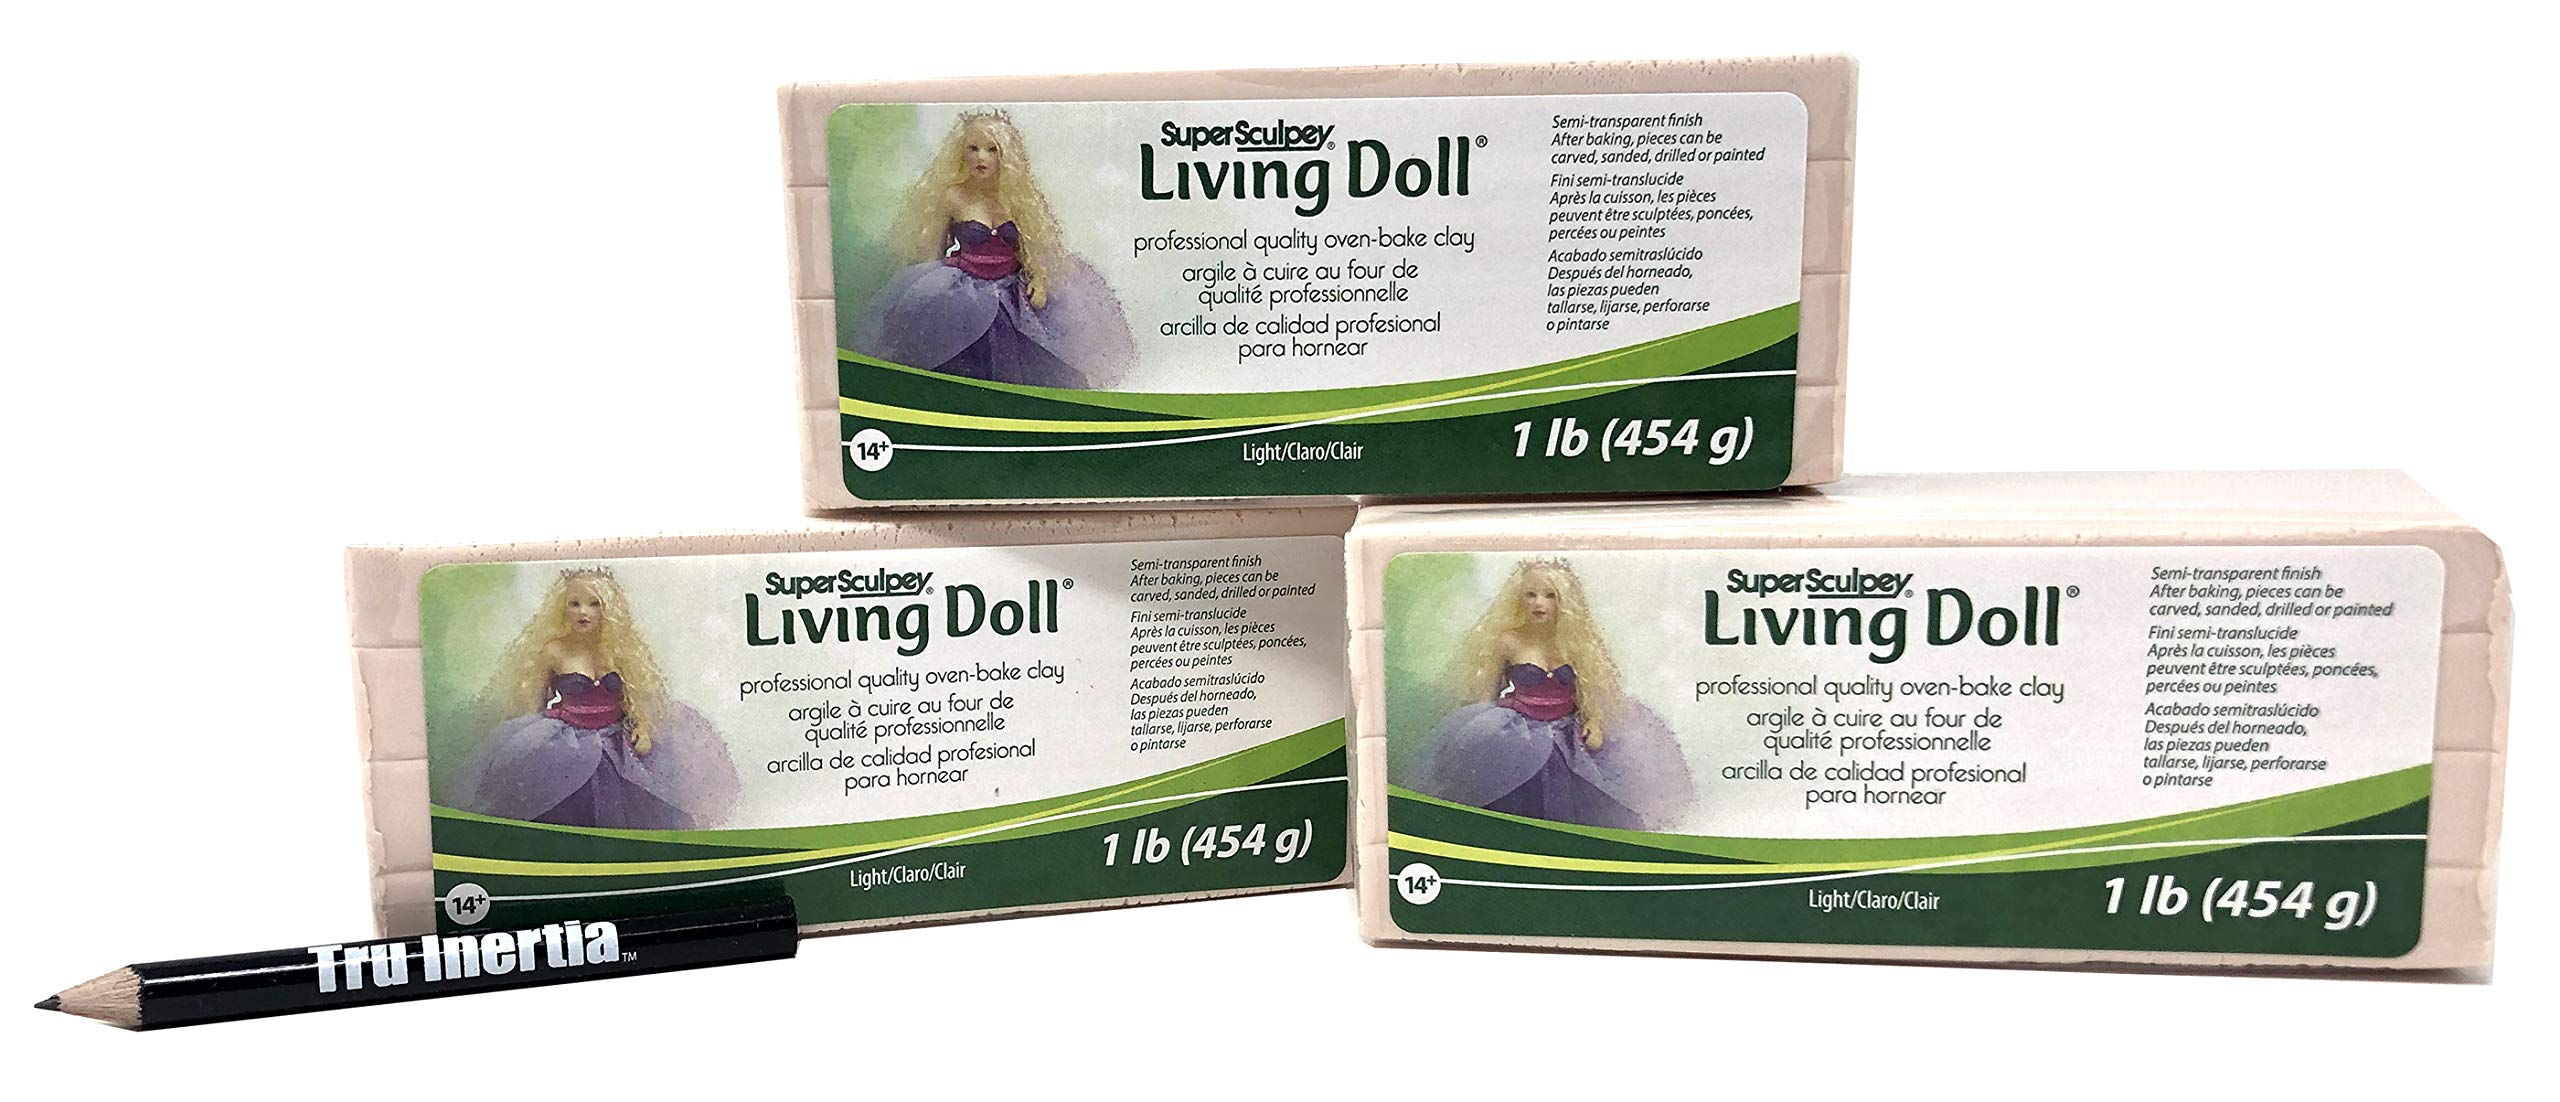 Tru Inertia Super Sculpey Living Doll Oven-Bake Clay Light Pack of 3 (1 Pound) Pencil